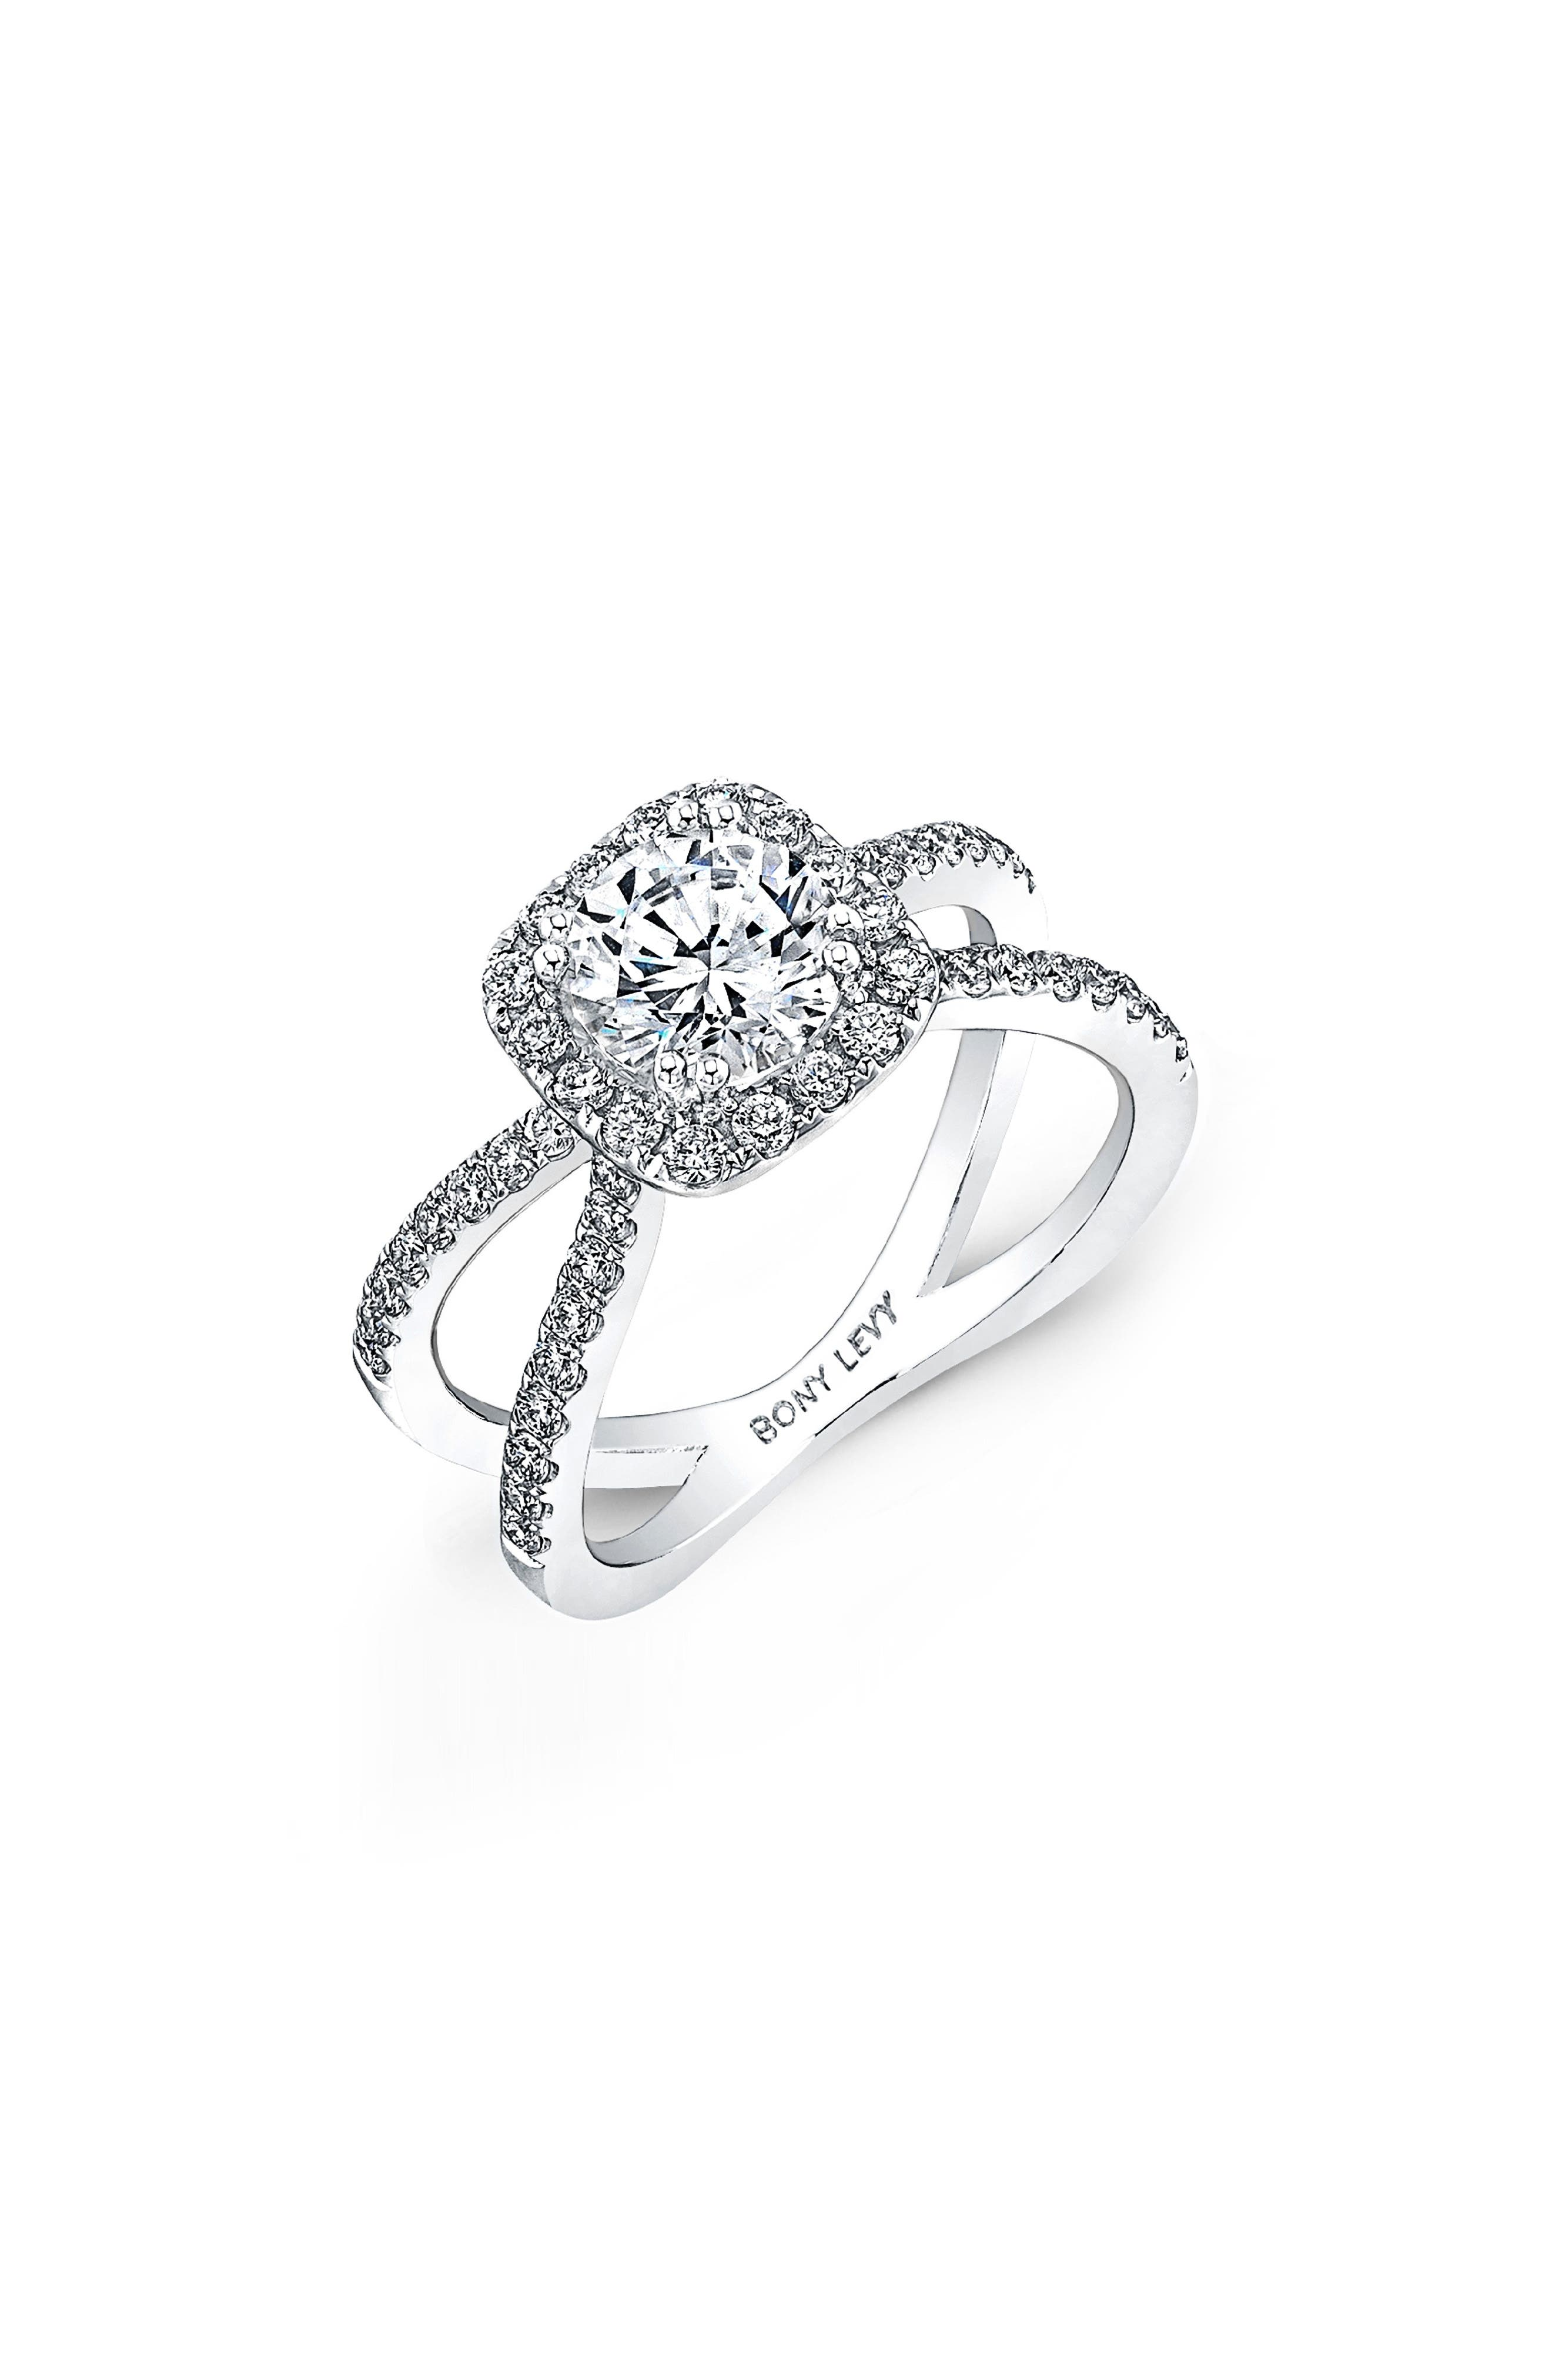 Pave Diamond Split Shank Round Engagement Ring Setting (Nordstrom Exclusive)